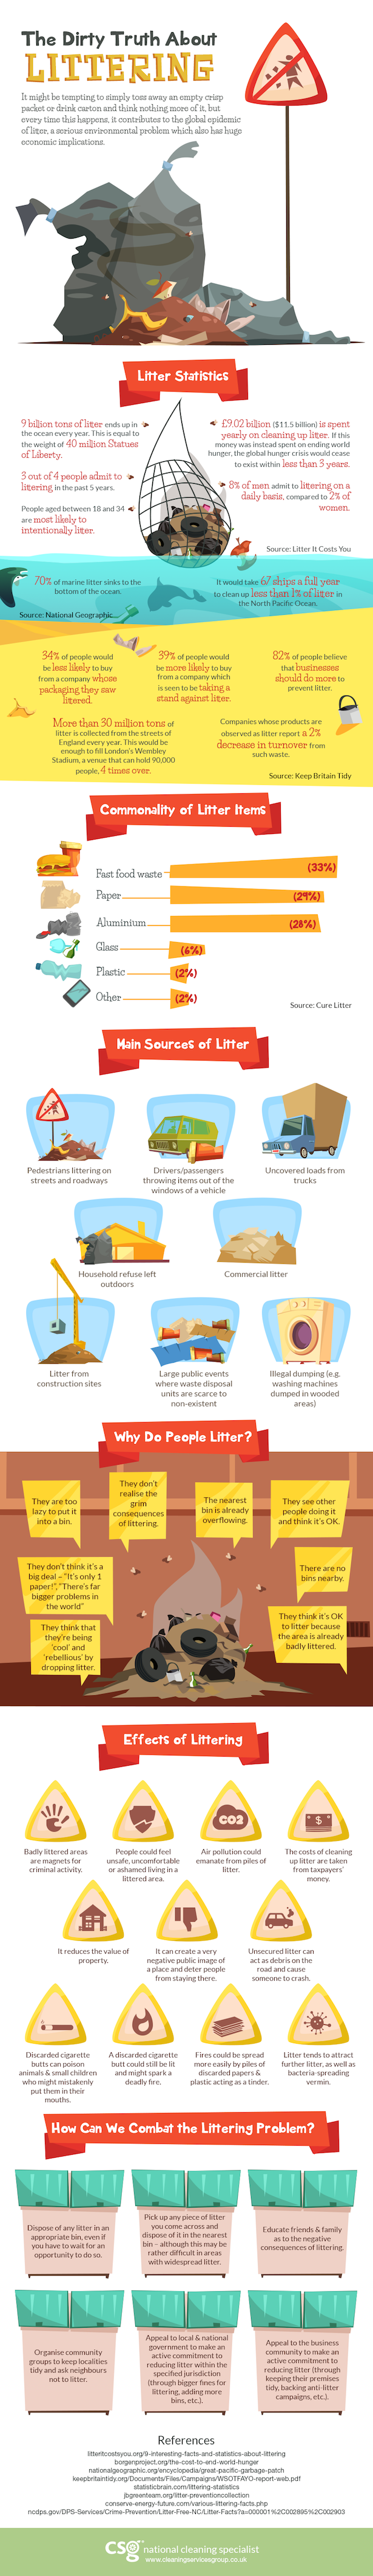 The Dirty Truth About Littering Infographic